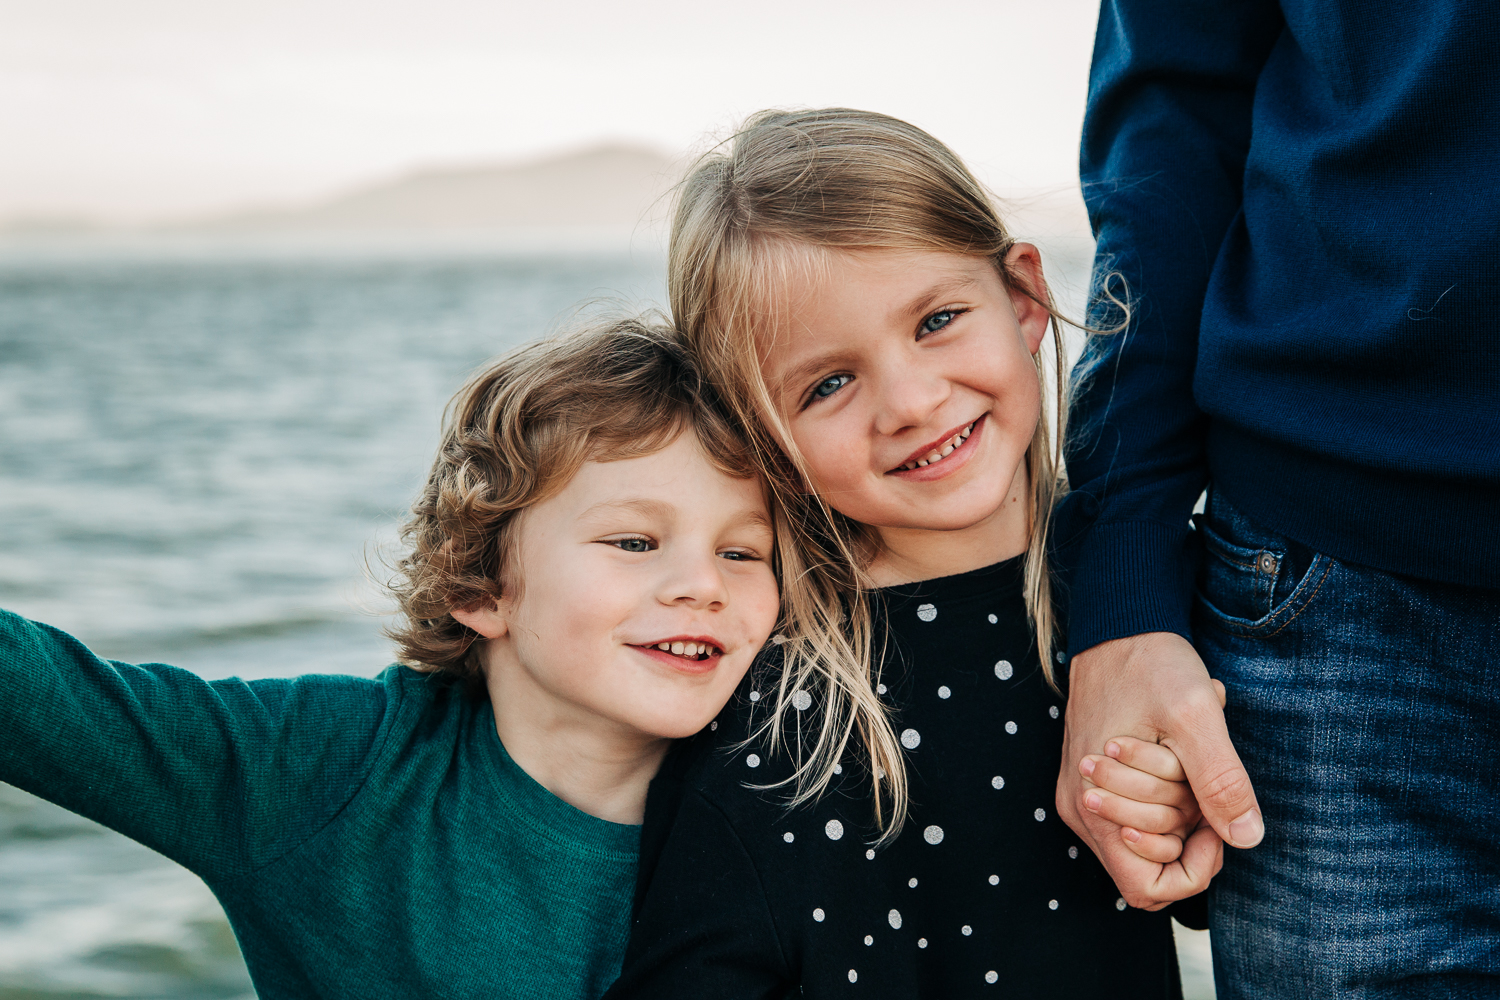 portrait of 4 year old brother and 6 year old sister snuggling while the little sister holds dad's hand | SF Bay Area Child Photographer